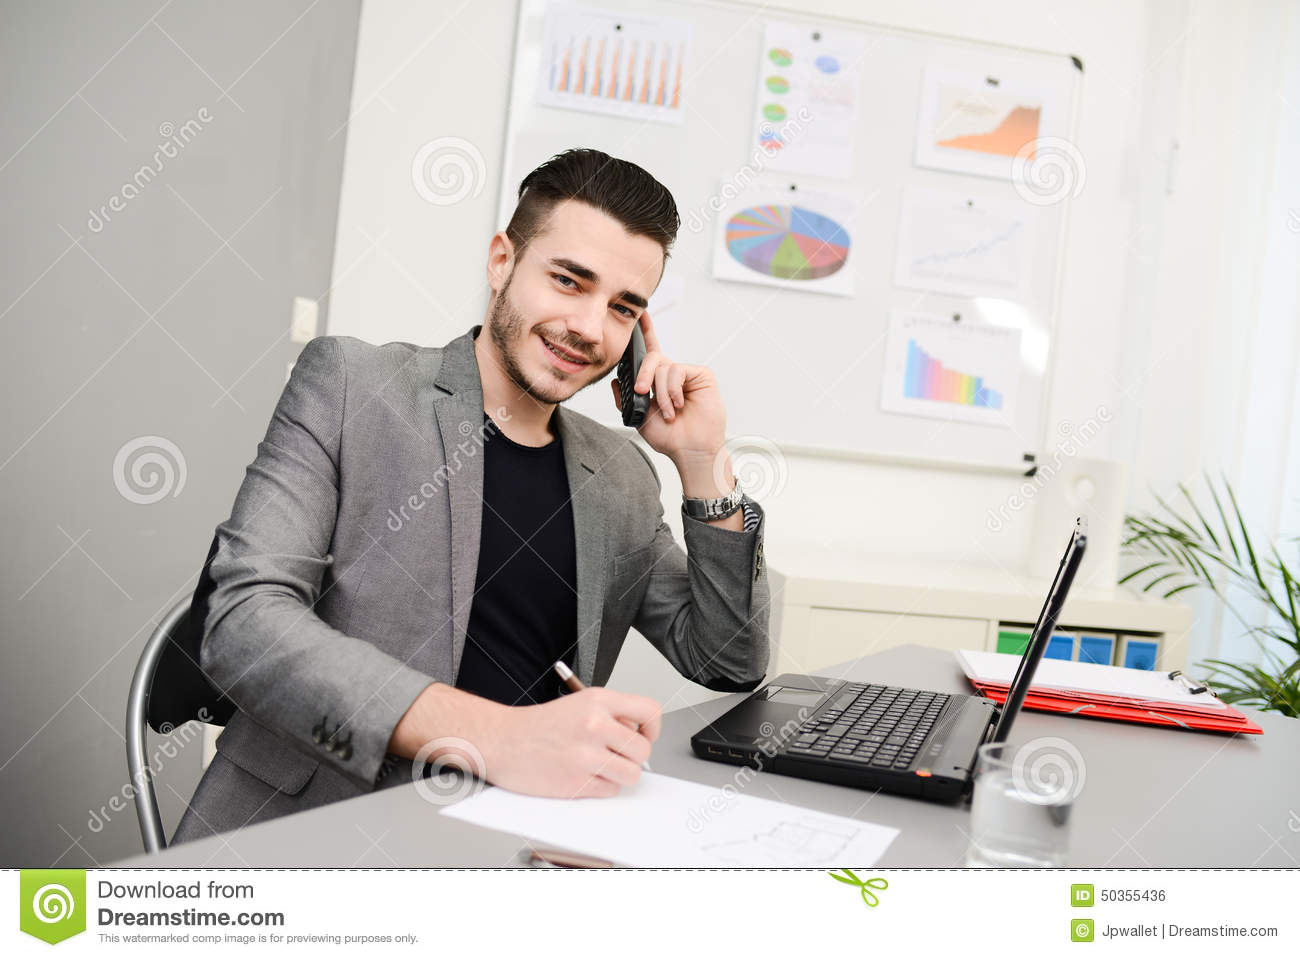 handsome-young-business-man-working-office-casual-cothes-laptop-computer-phone-50355436.jpg